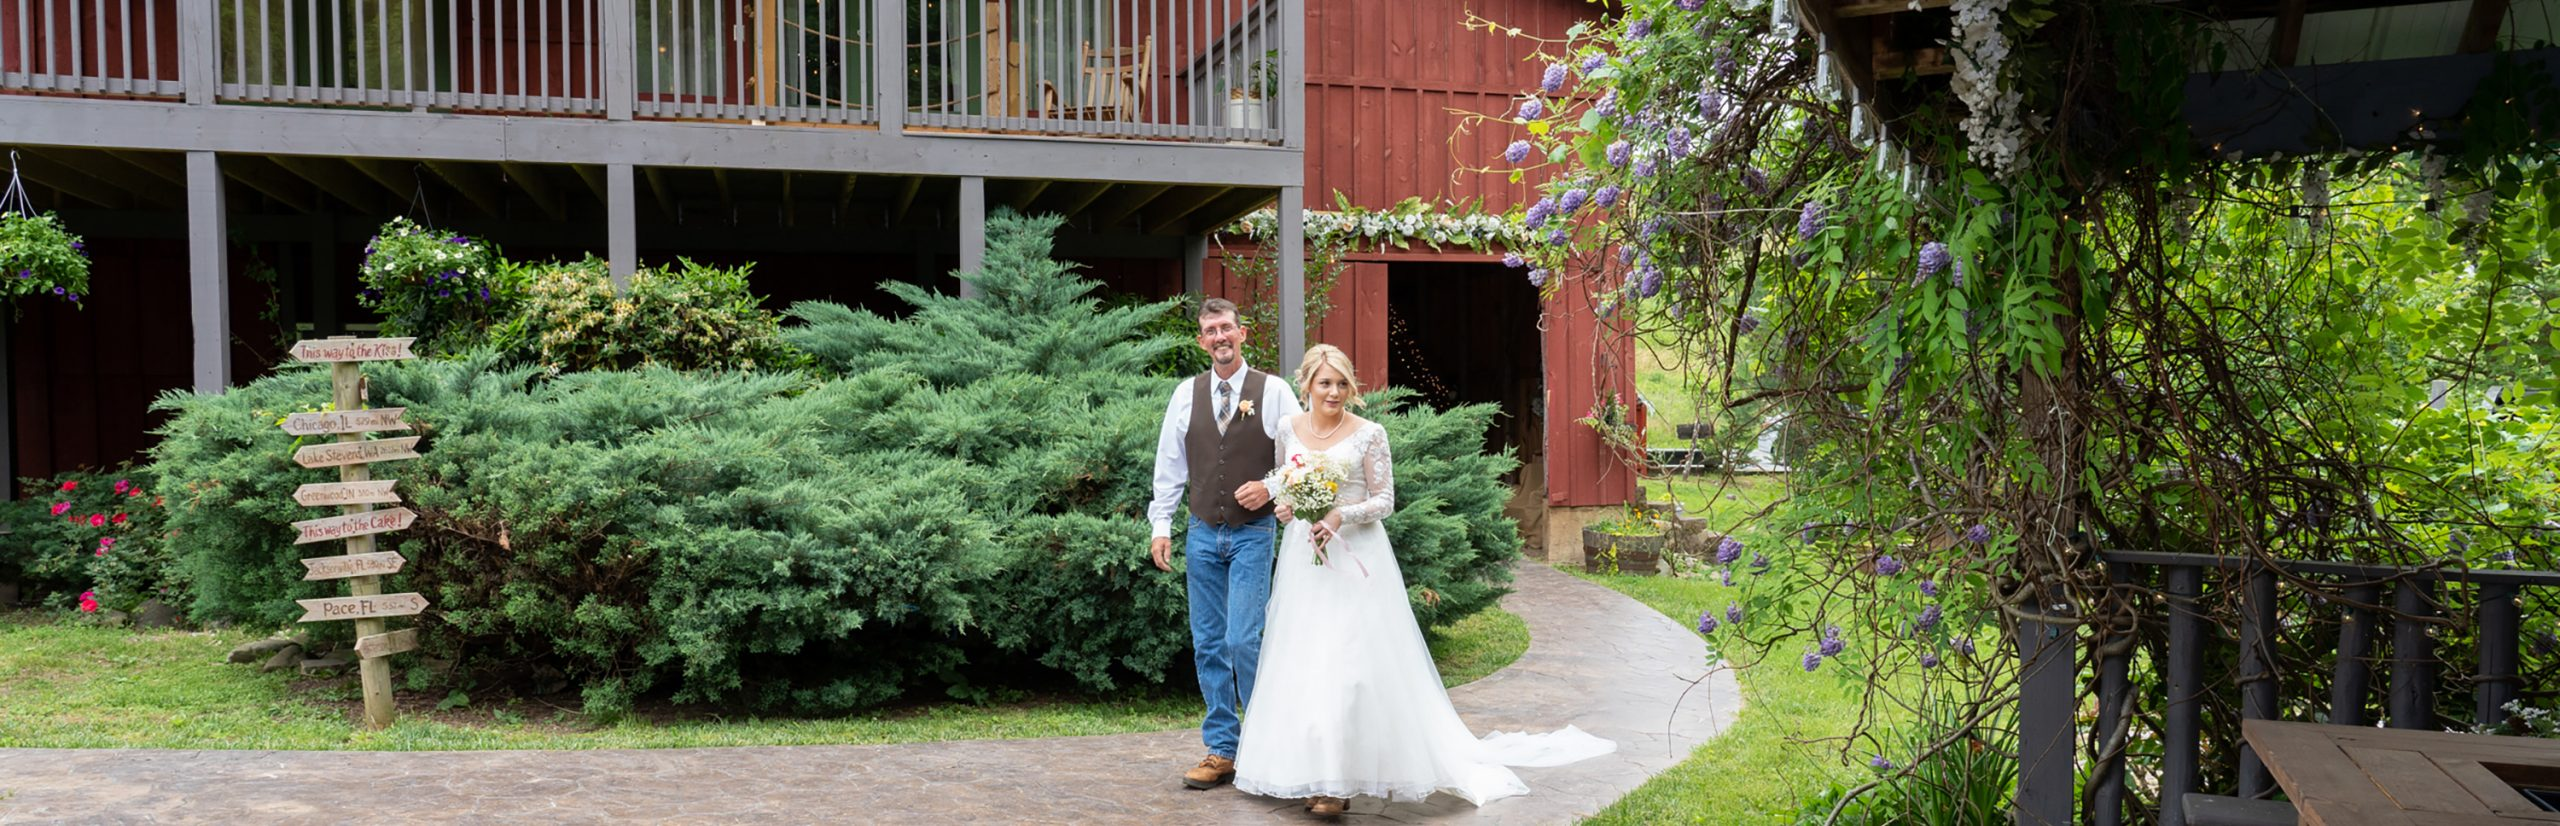 Father giving away his daughter down a garden path by a red barn at Honeysuckle Hills wedding venue